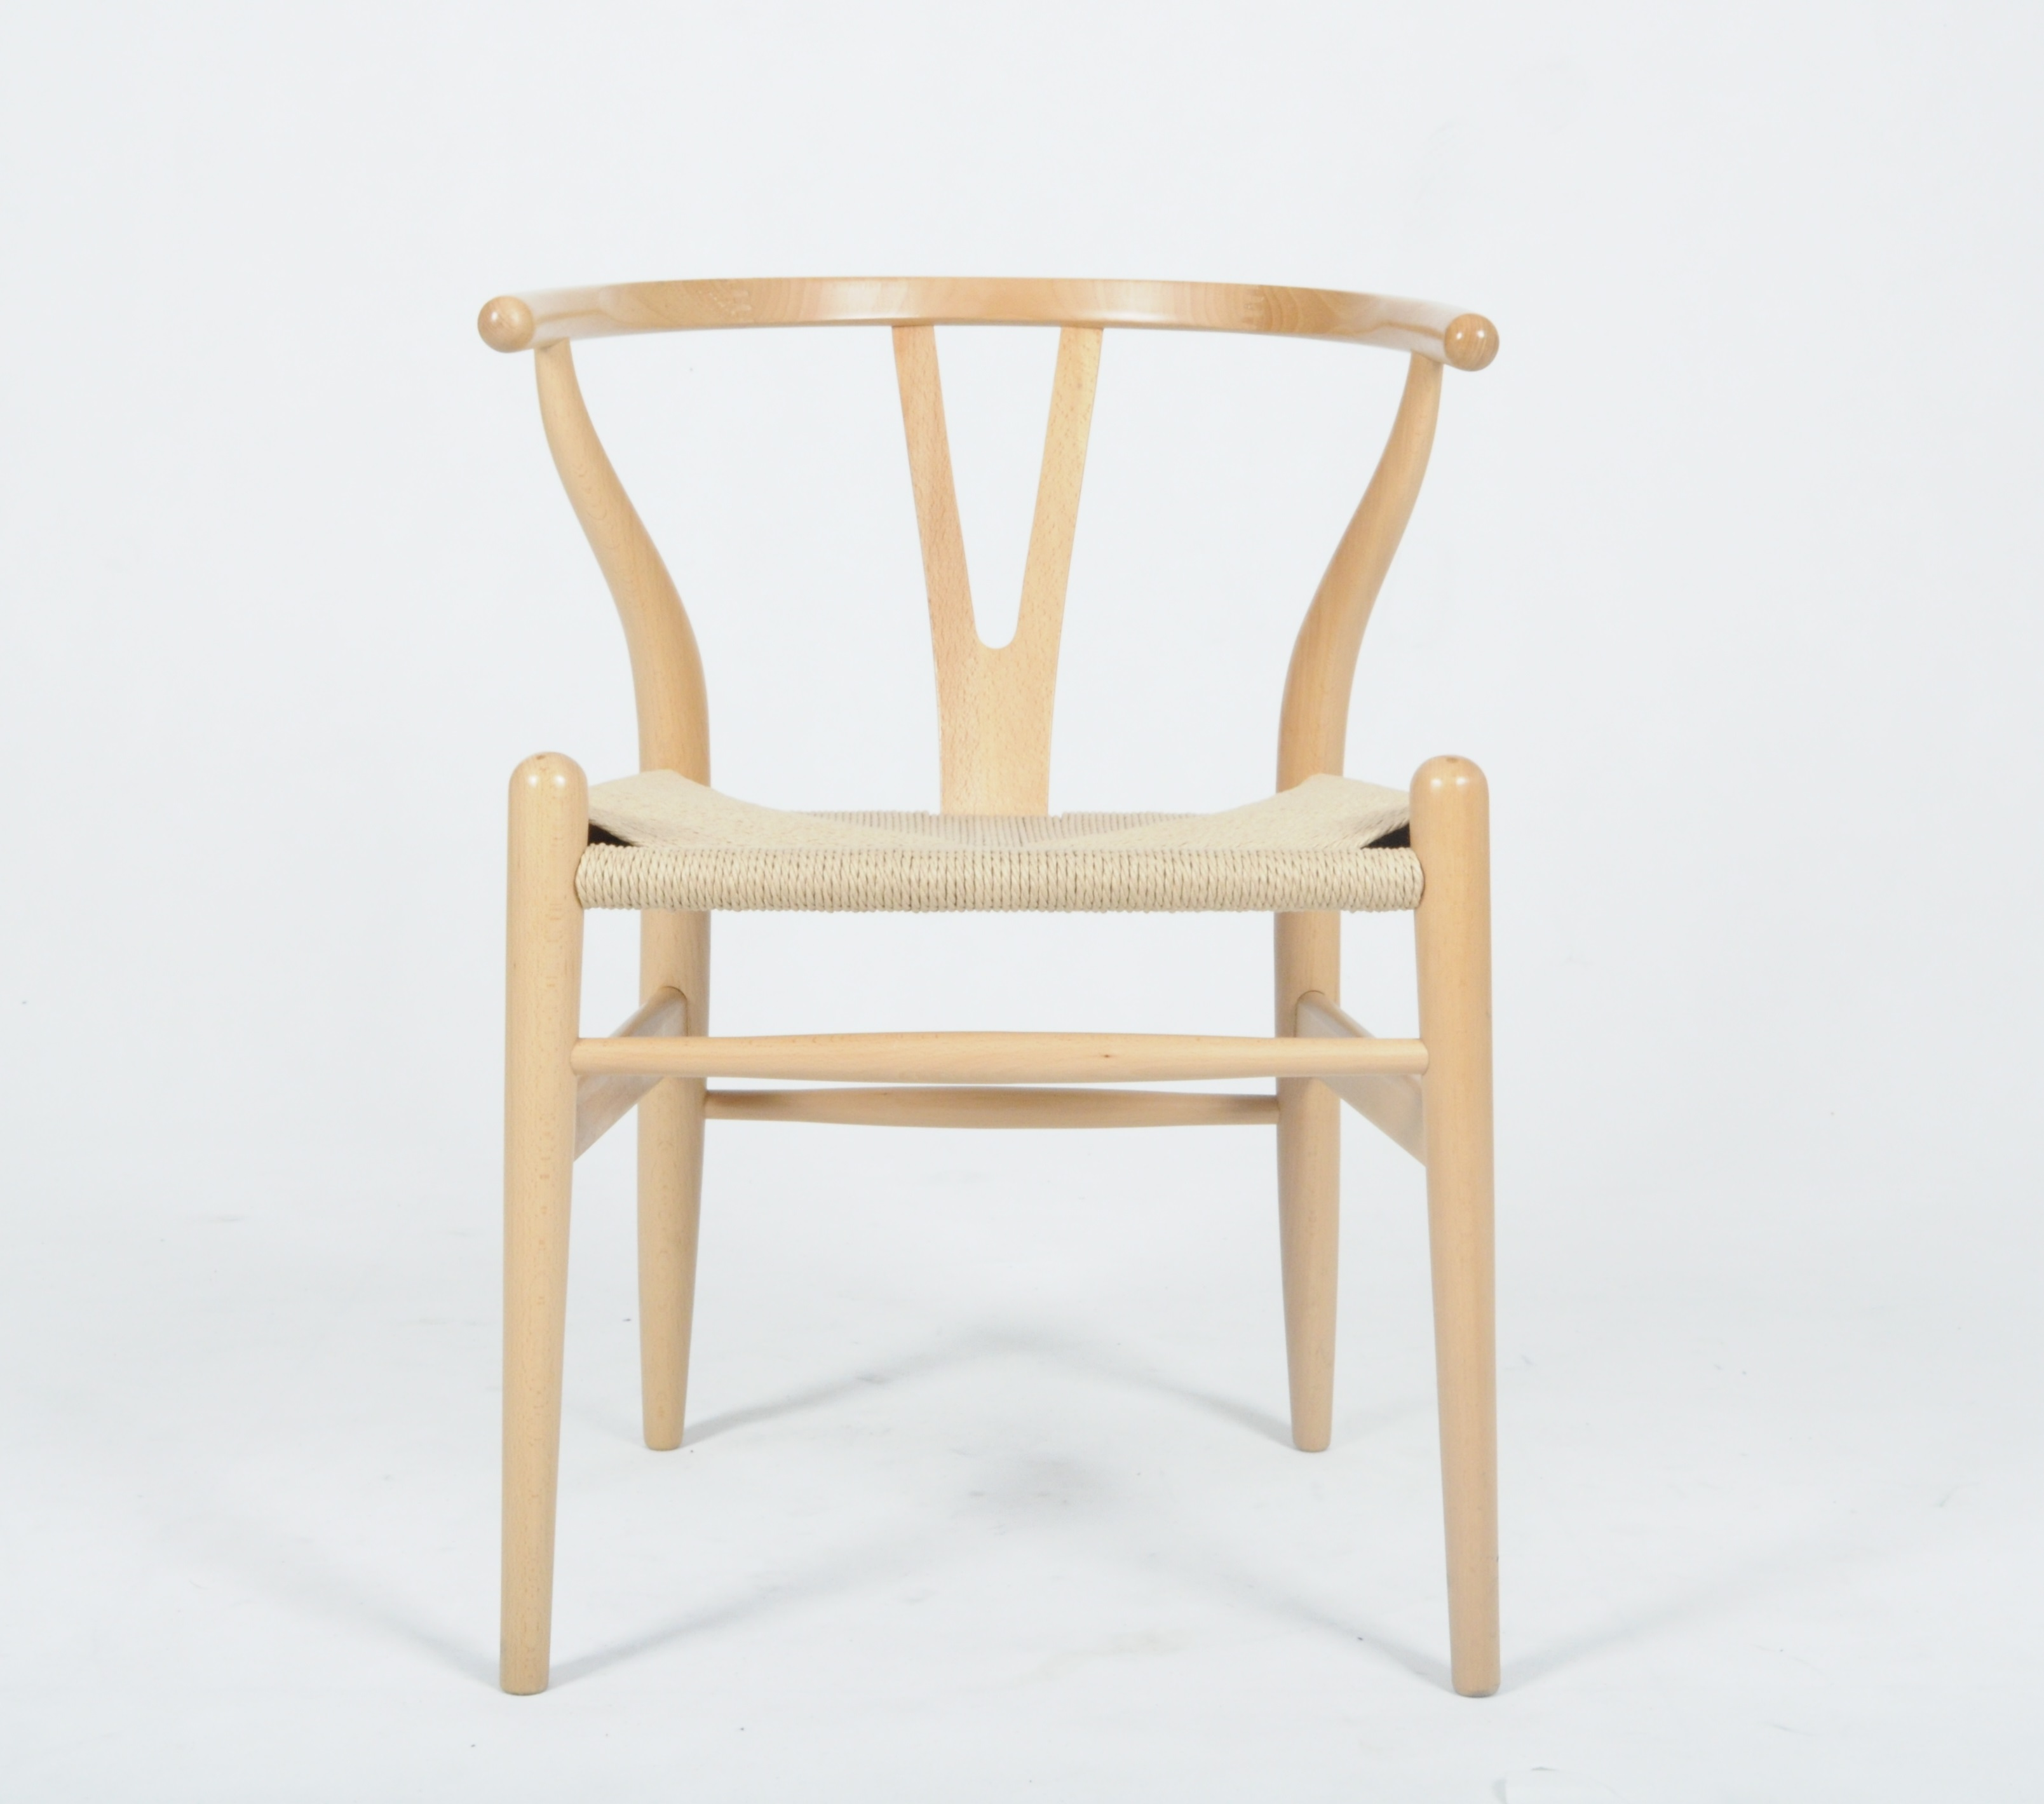 Hans wegner CH24 chair replica